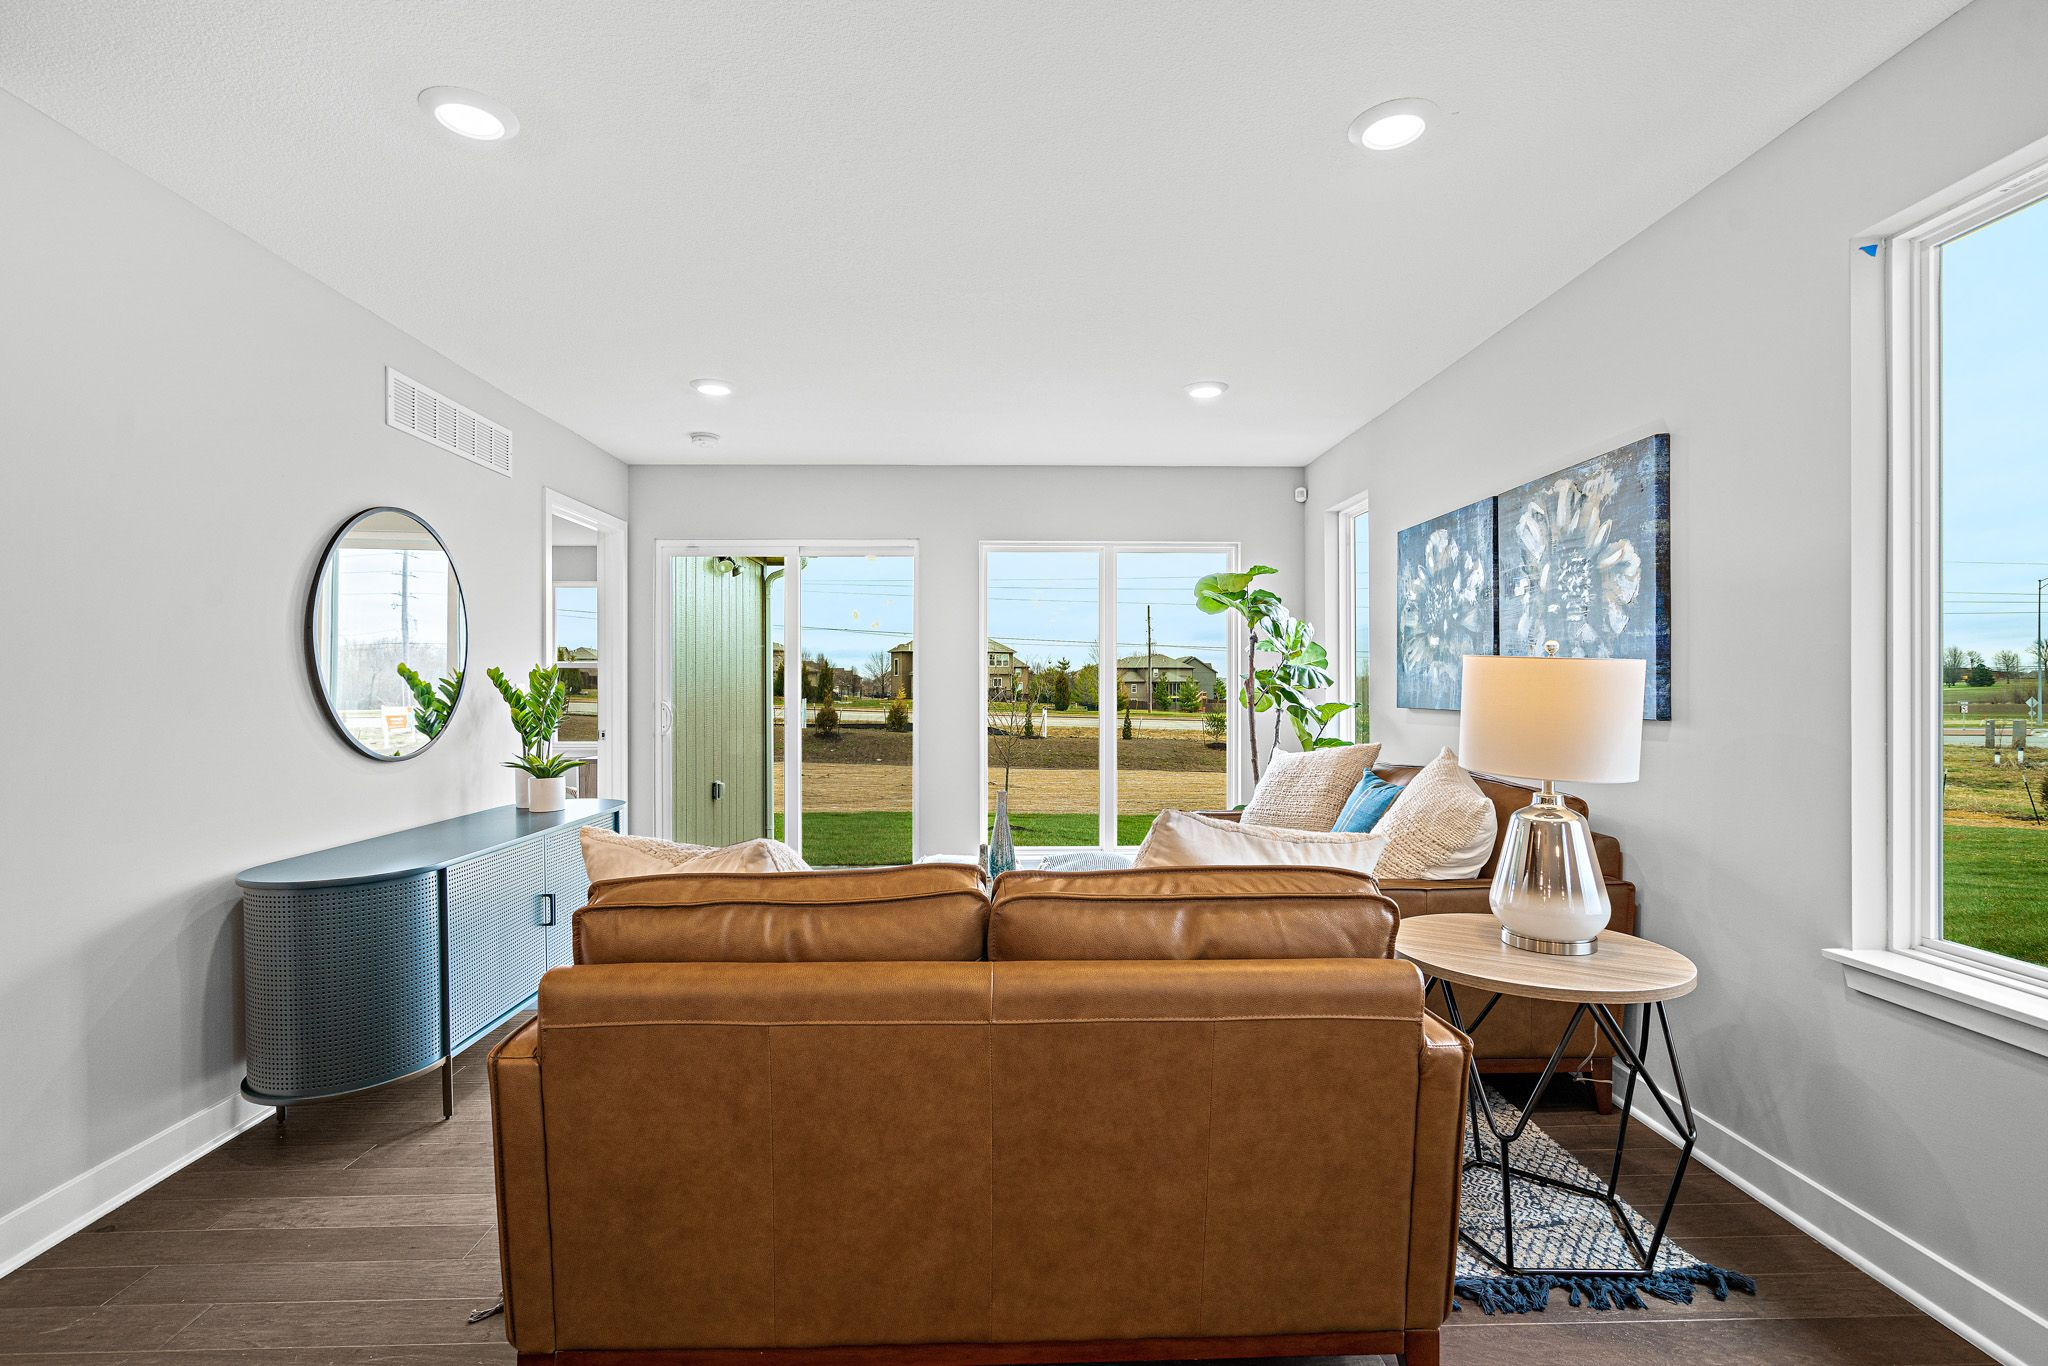 Living Area featured in the sienna-contemporary By clover & hive in Kansas City, MO